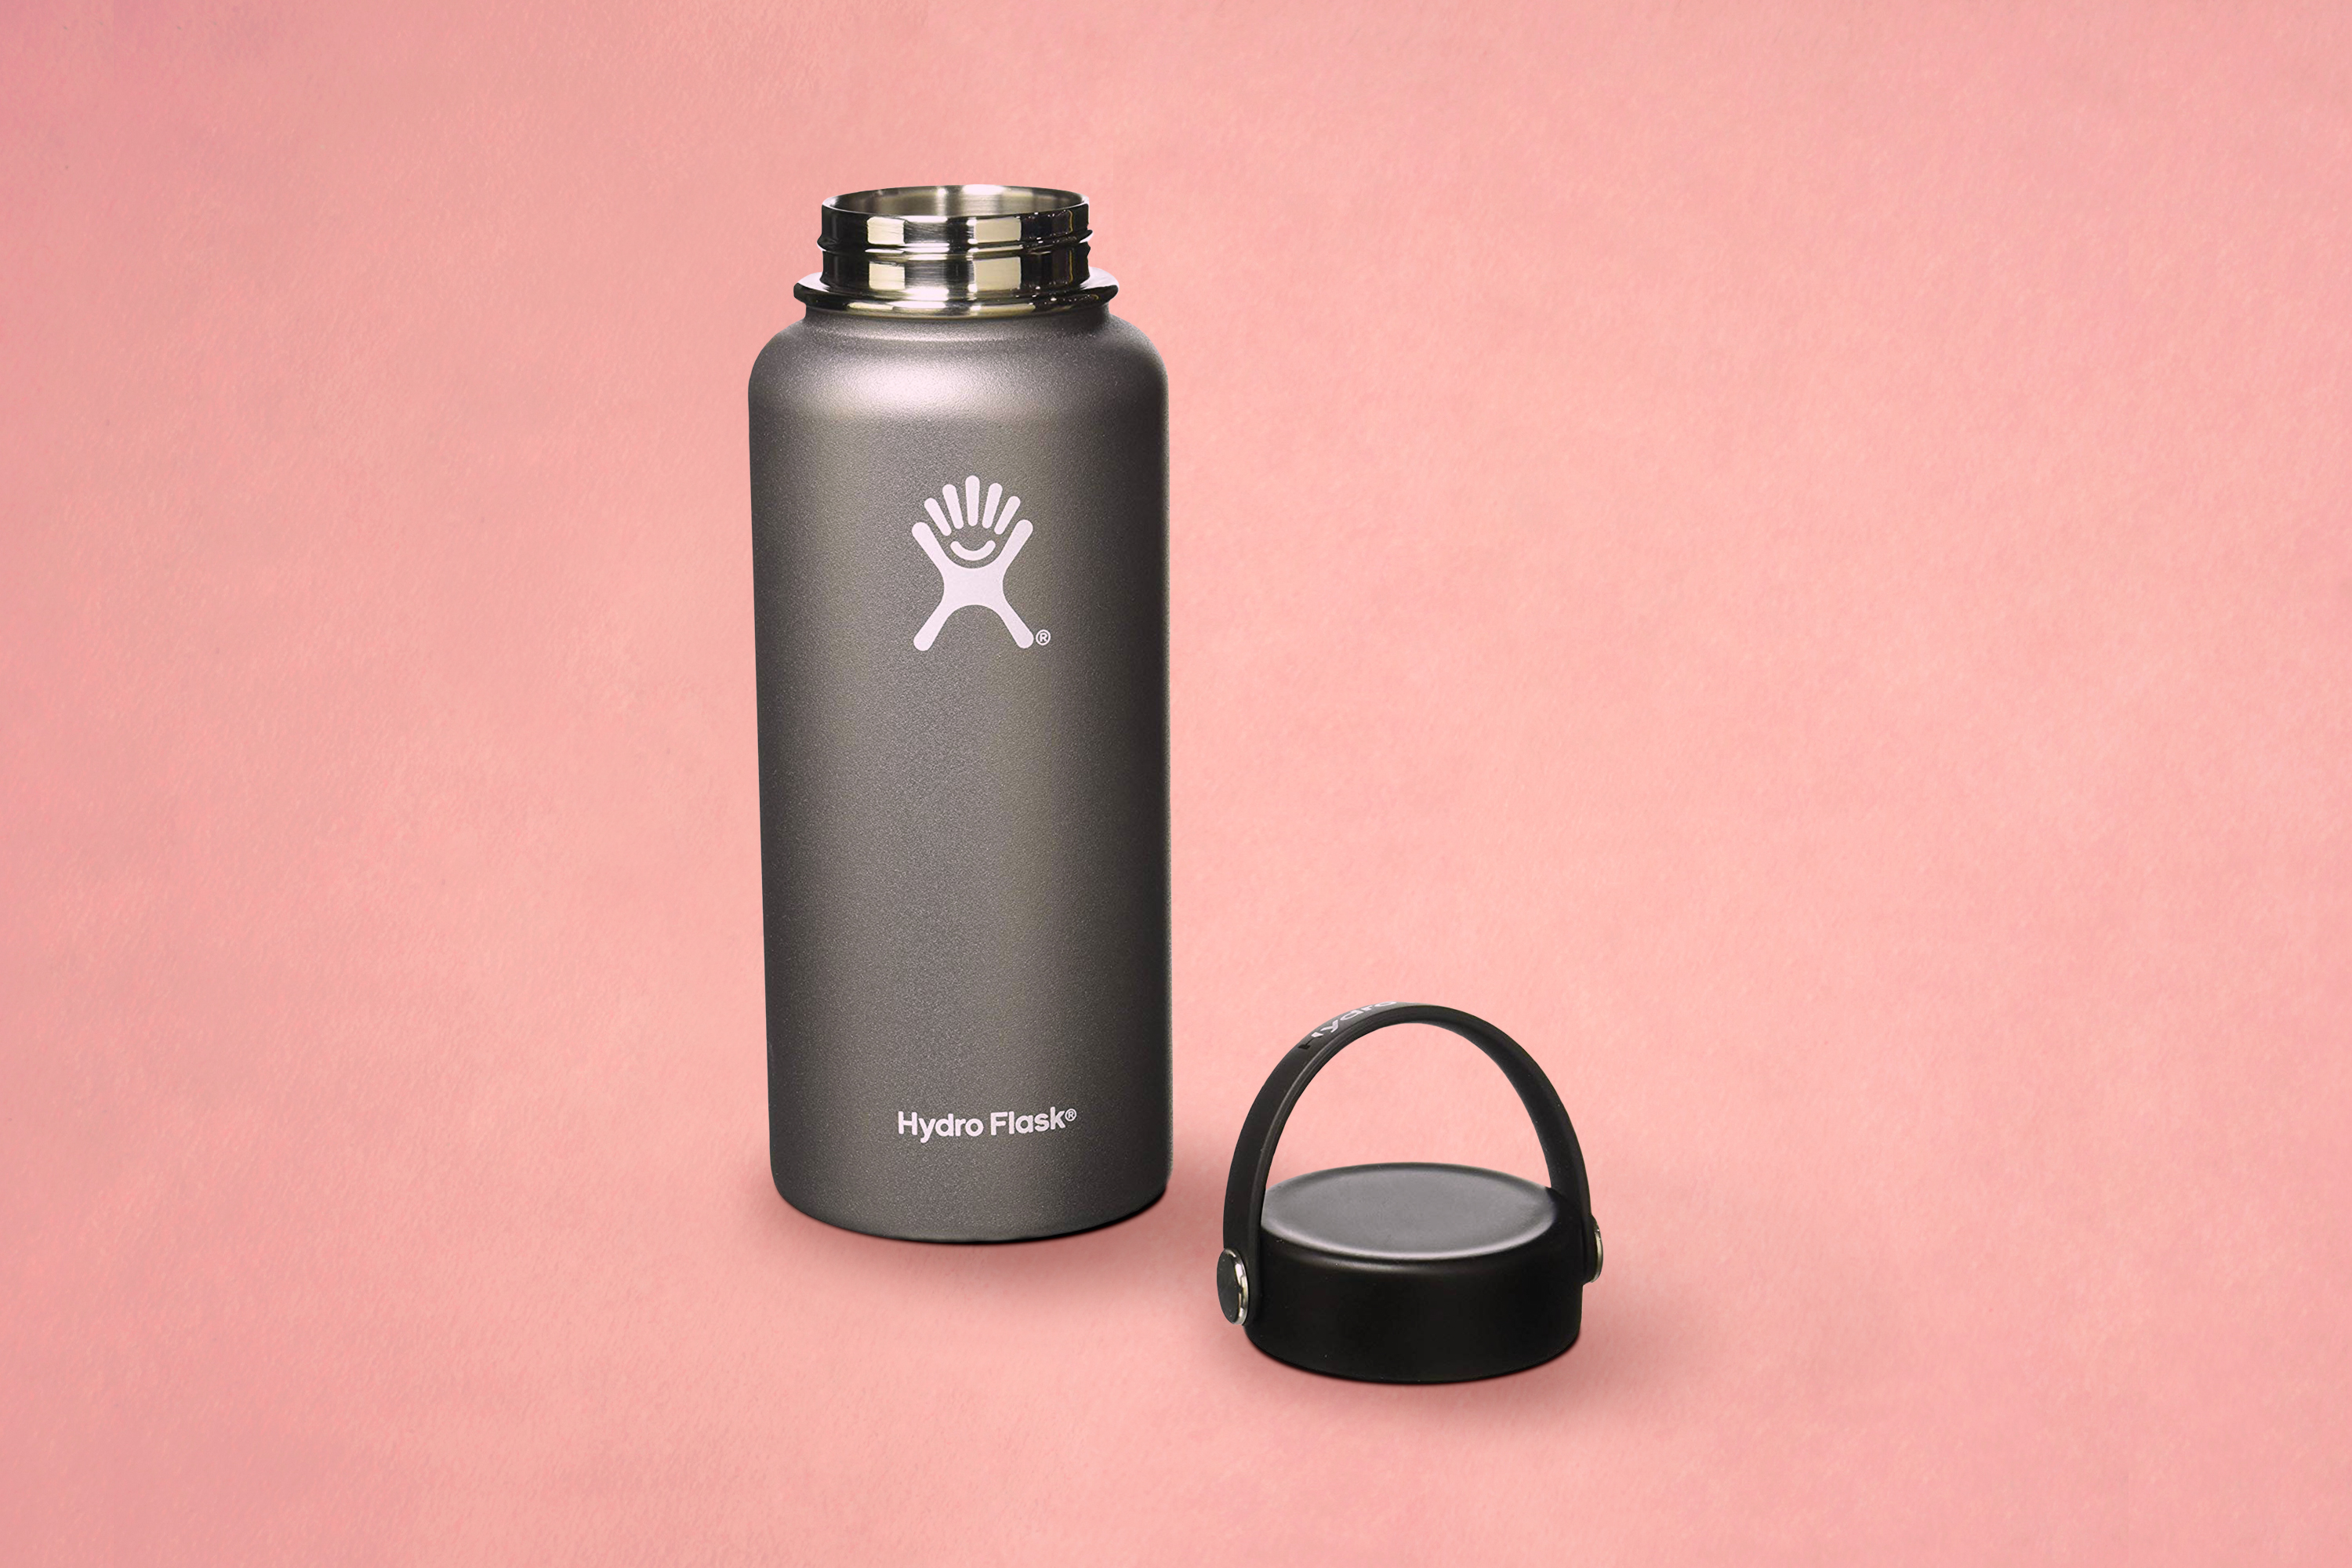 Hydroflask's aren't a mug, but they work like one